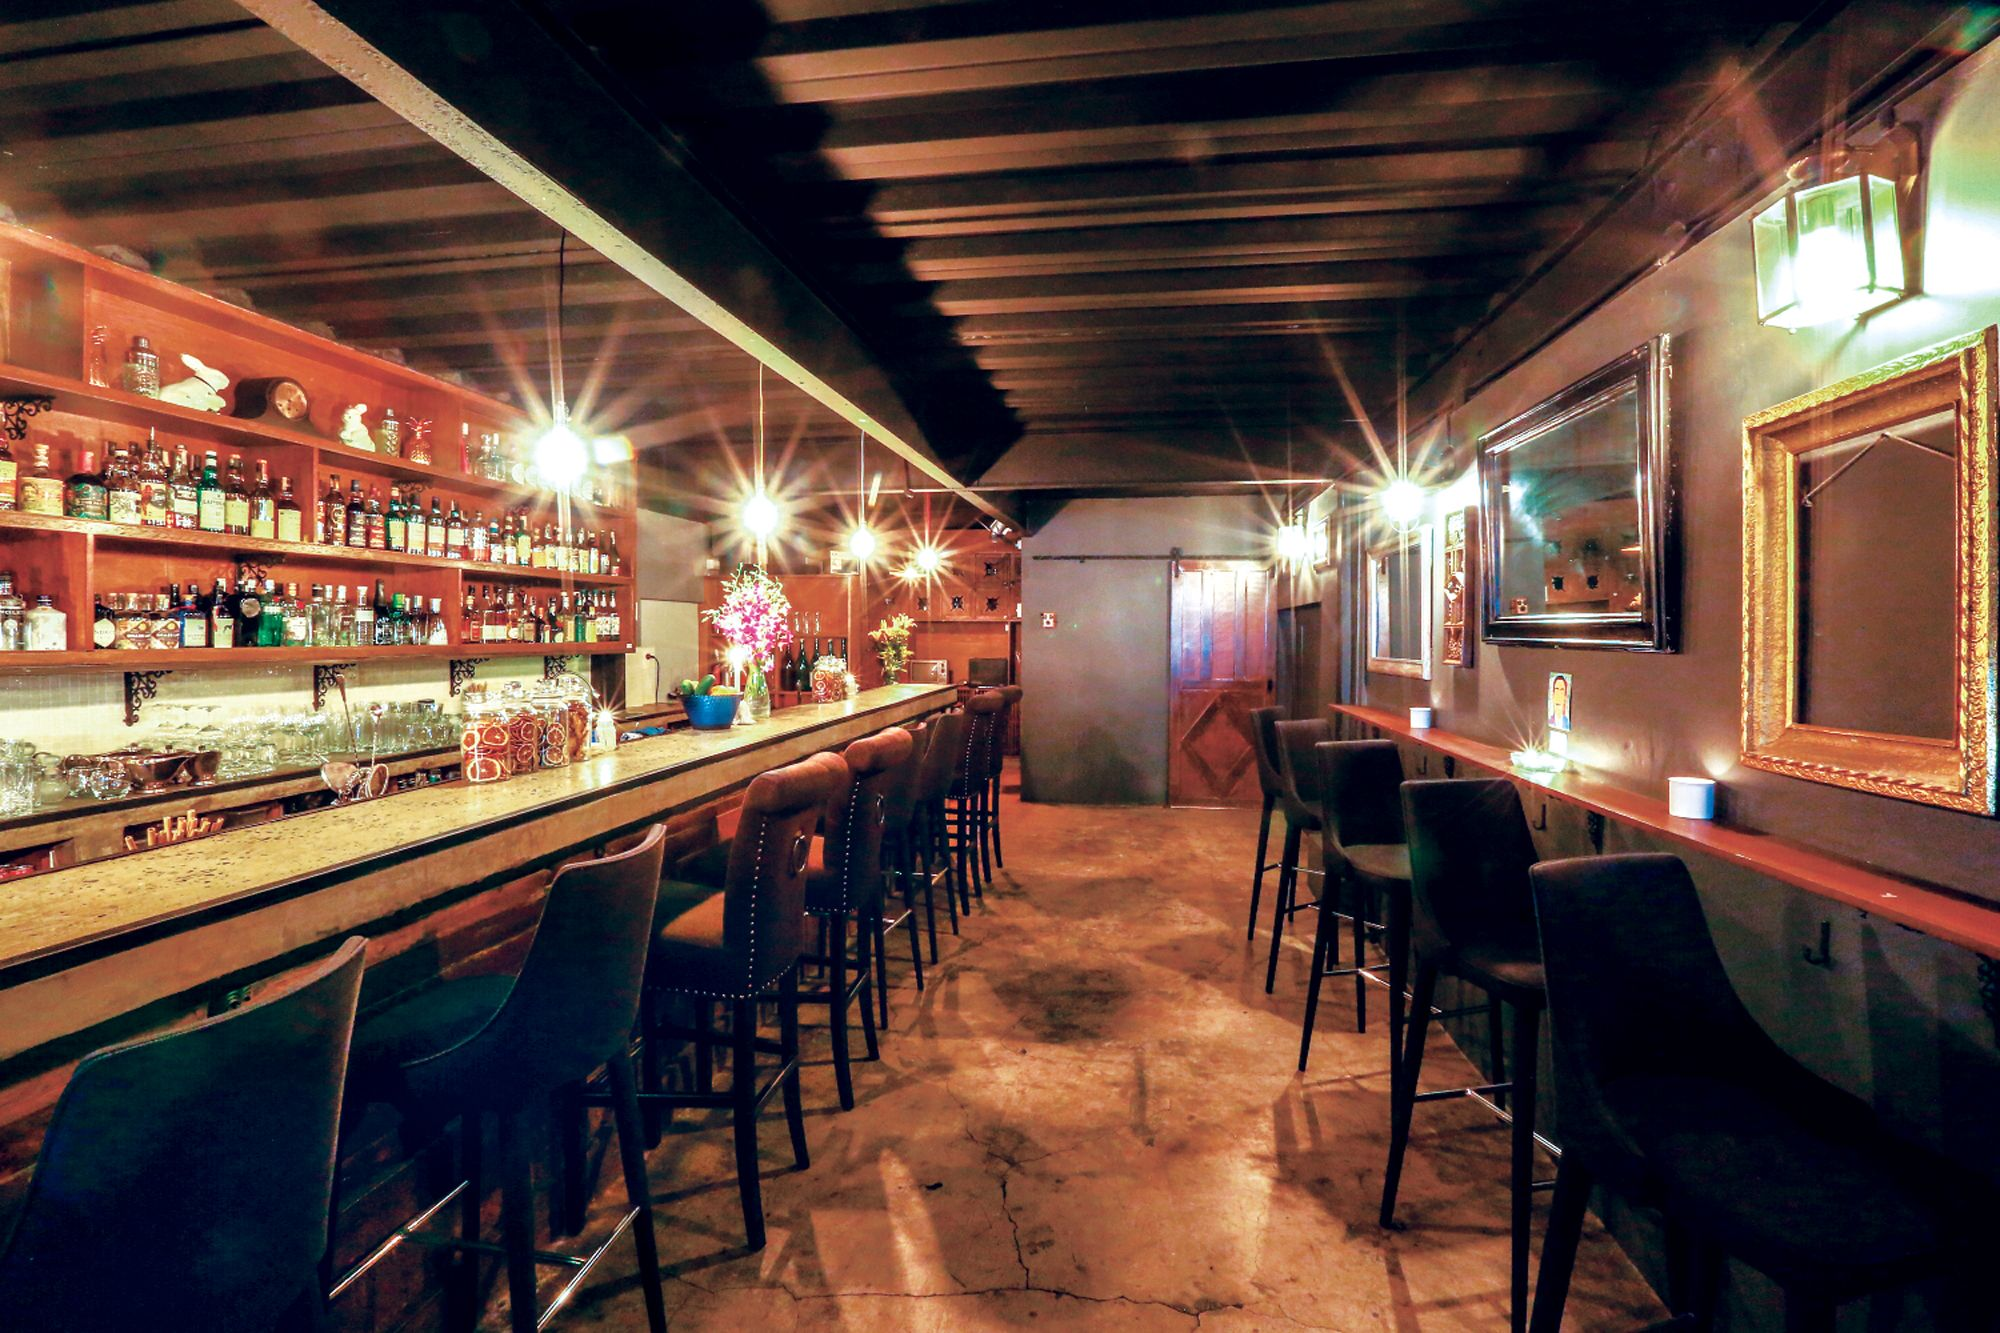 Where To Drink: T.Dining Awards Run Rabbit Run, Poblacion As The Best Bar Of 2020